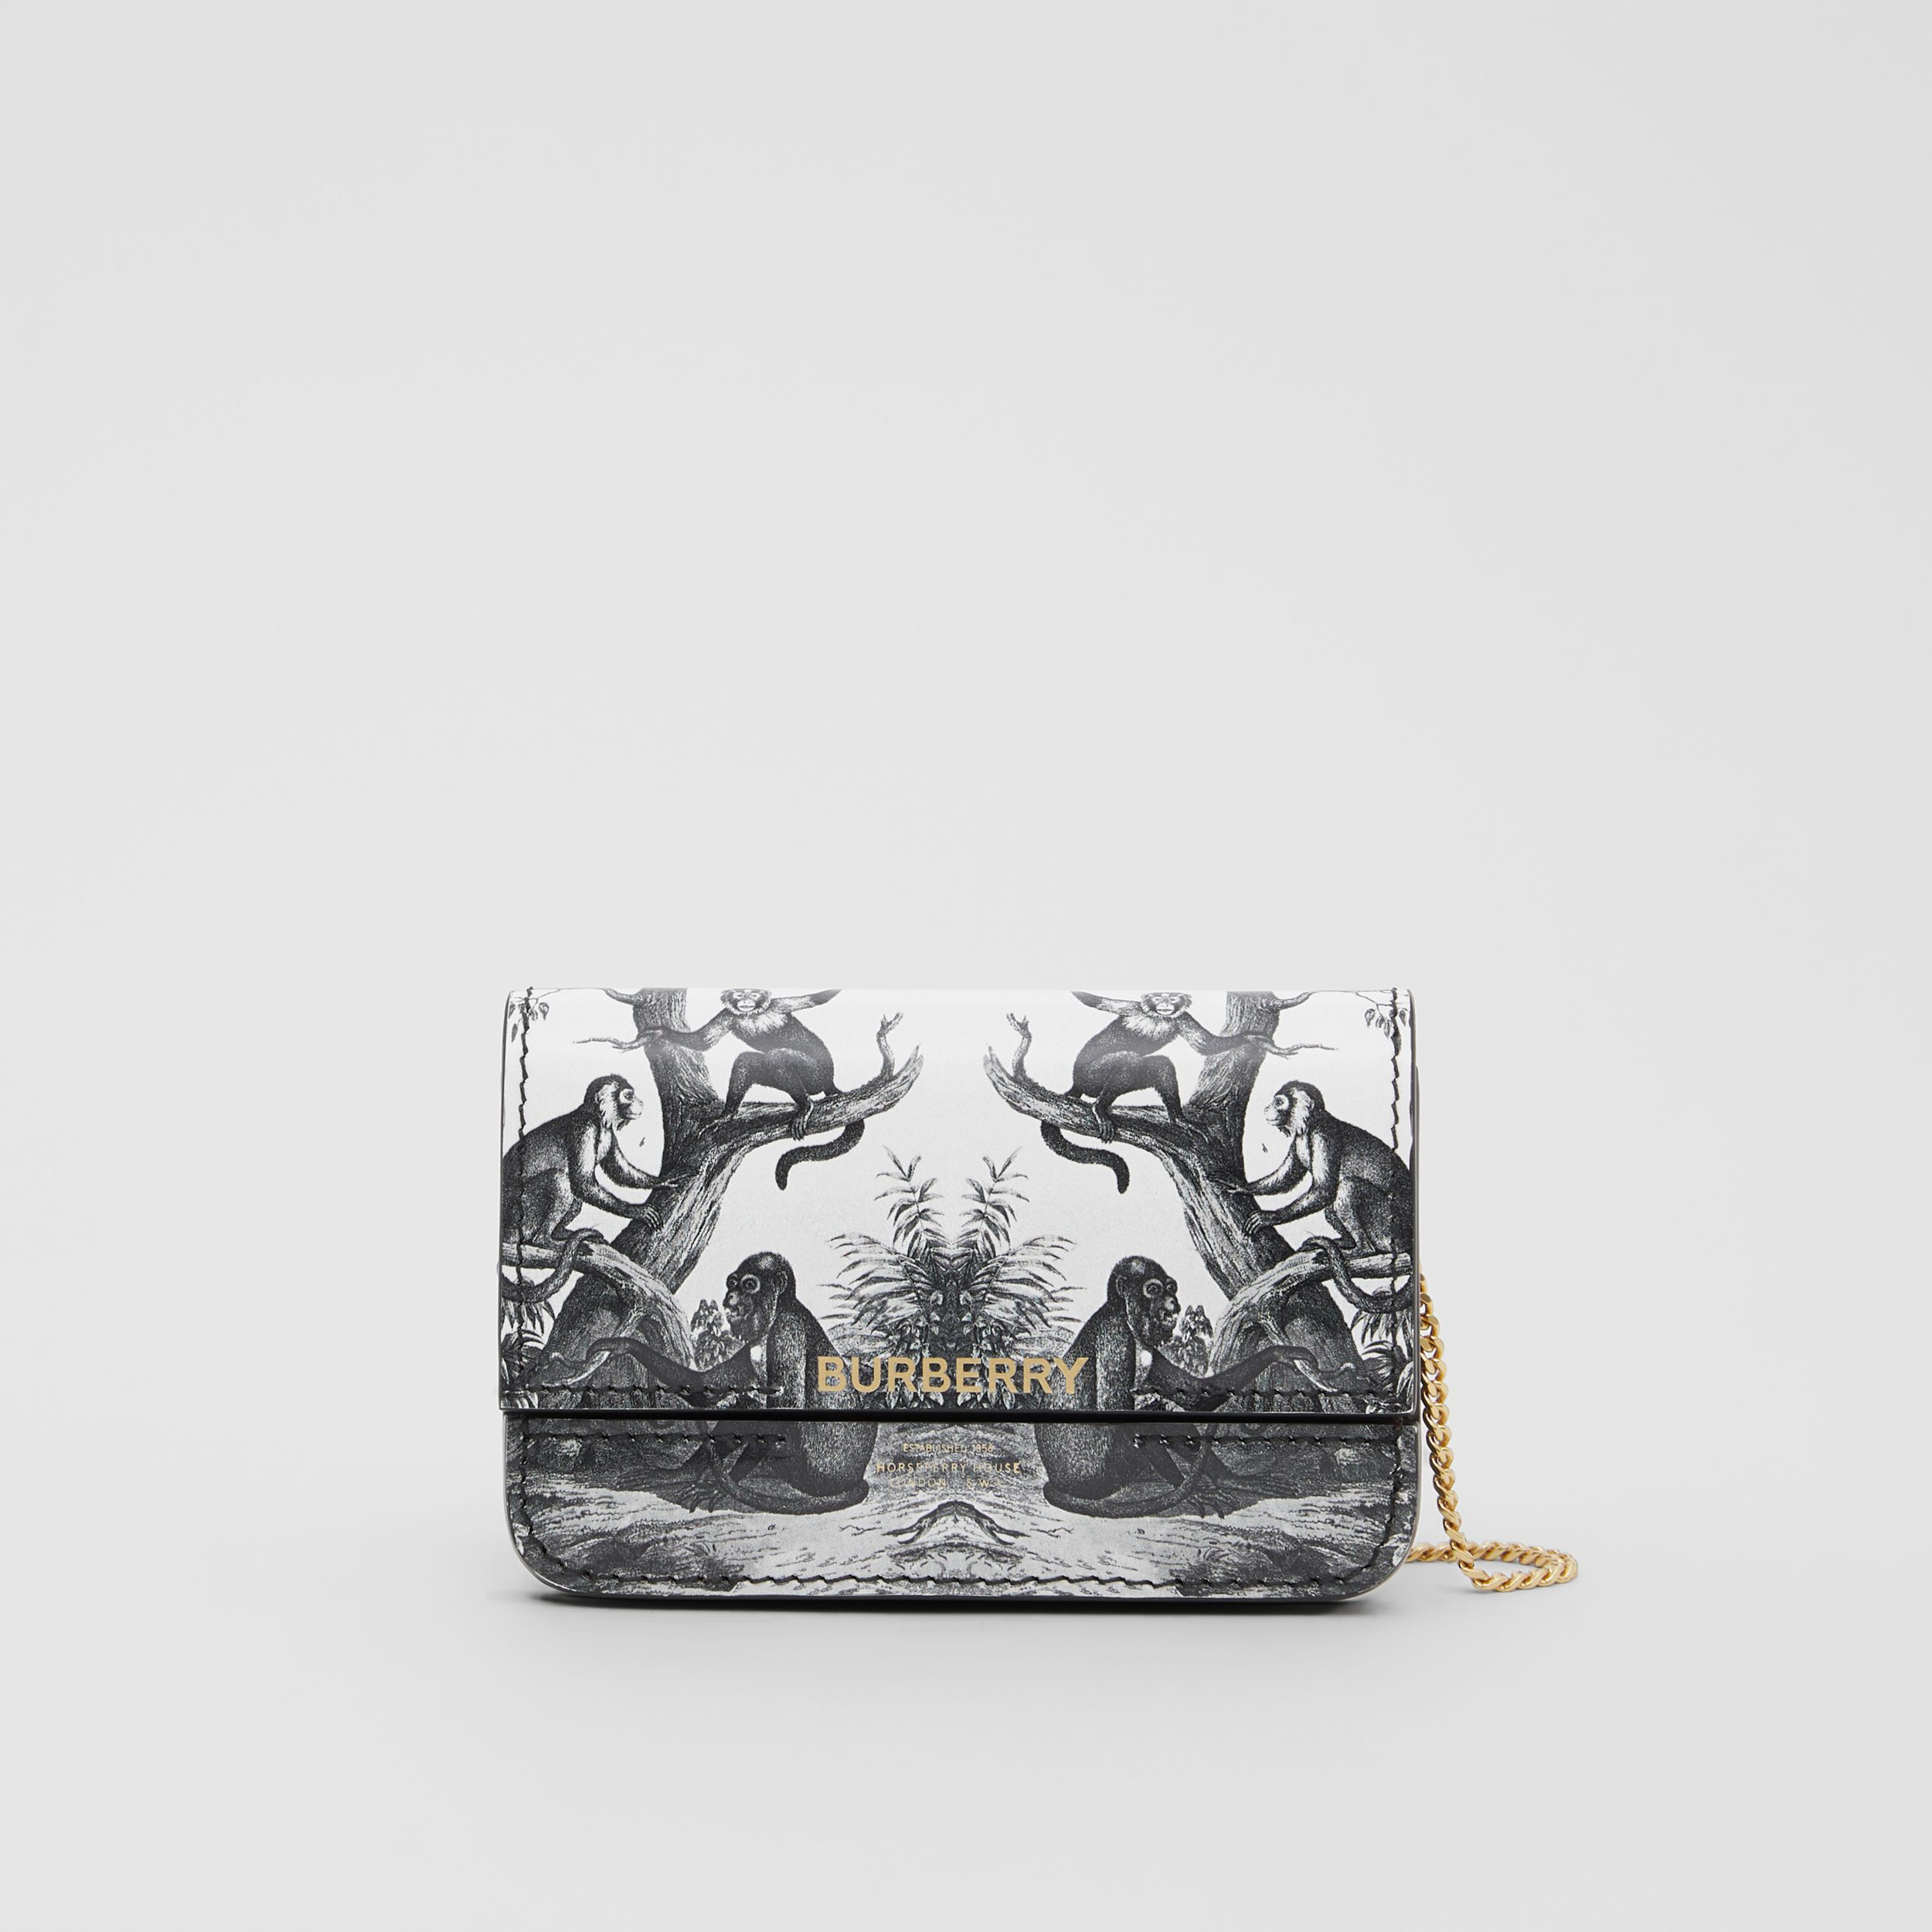 Monkey Print Leather Card Case with Chain Strap in Black/white | Burberry Singapore - 1